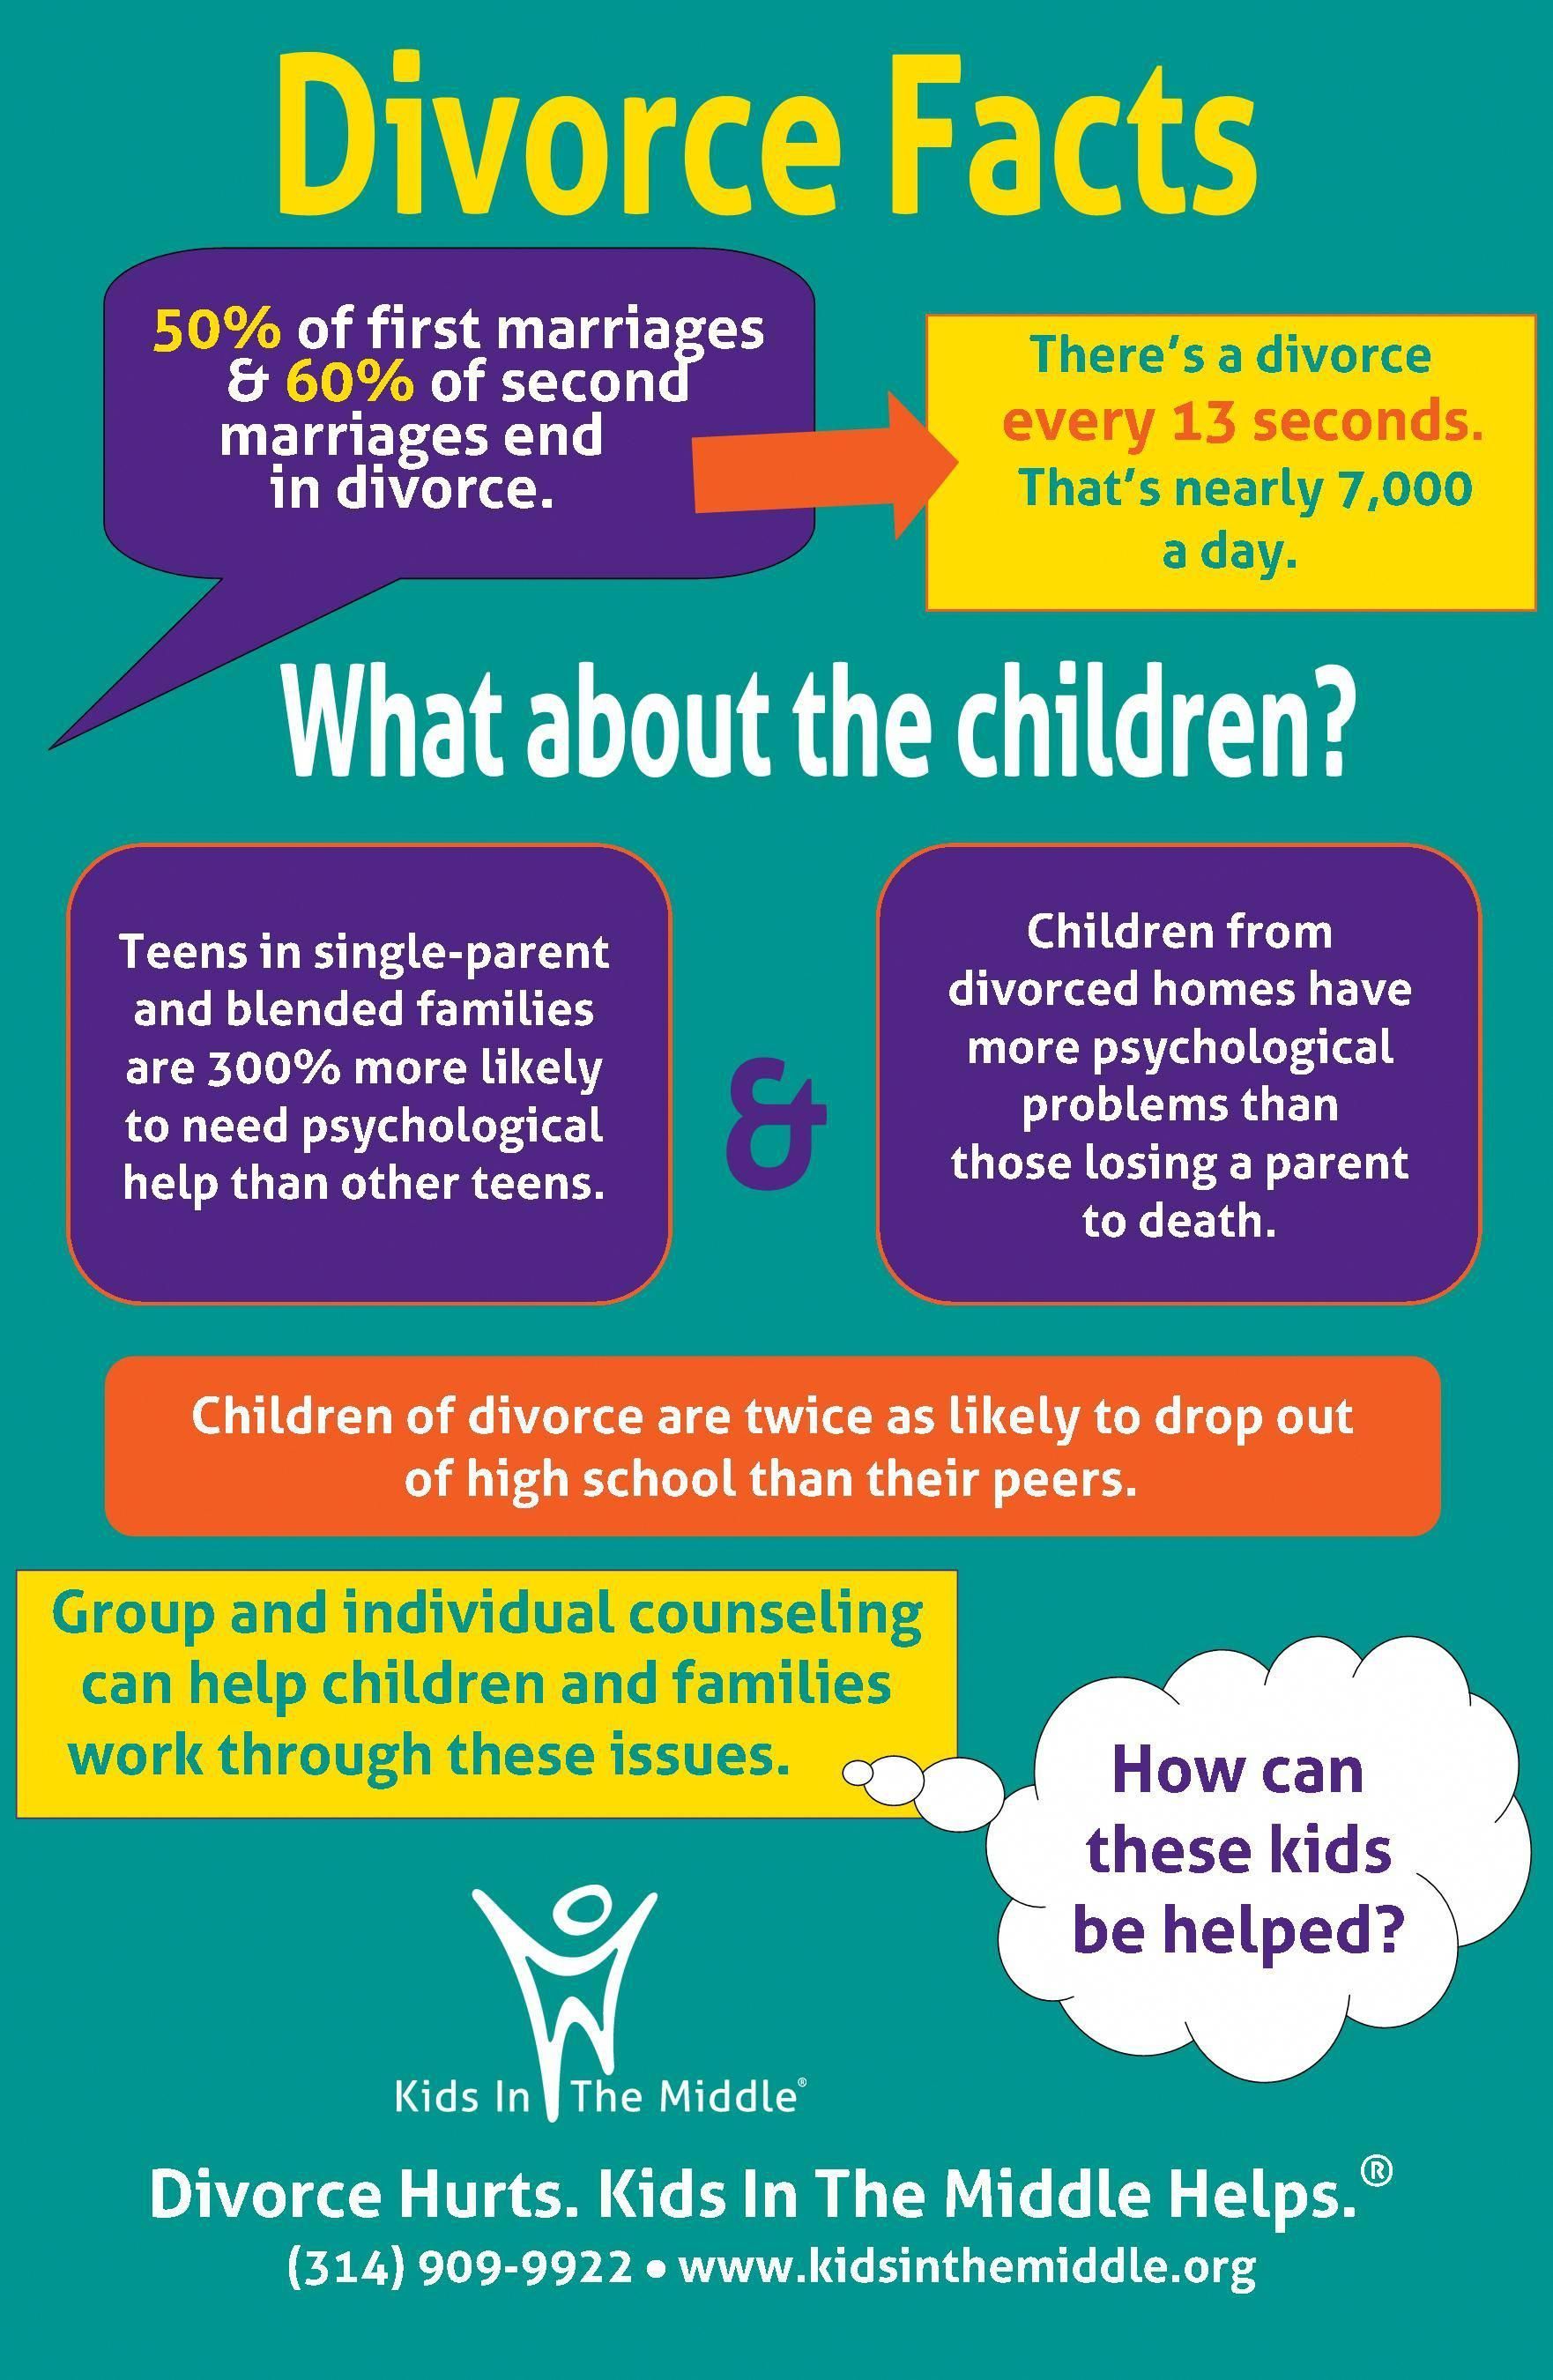 Divorce Facts thanks for making your kids another statistic